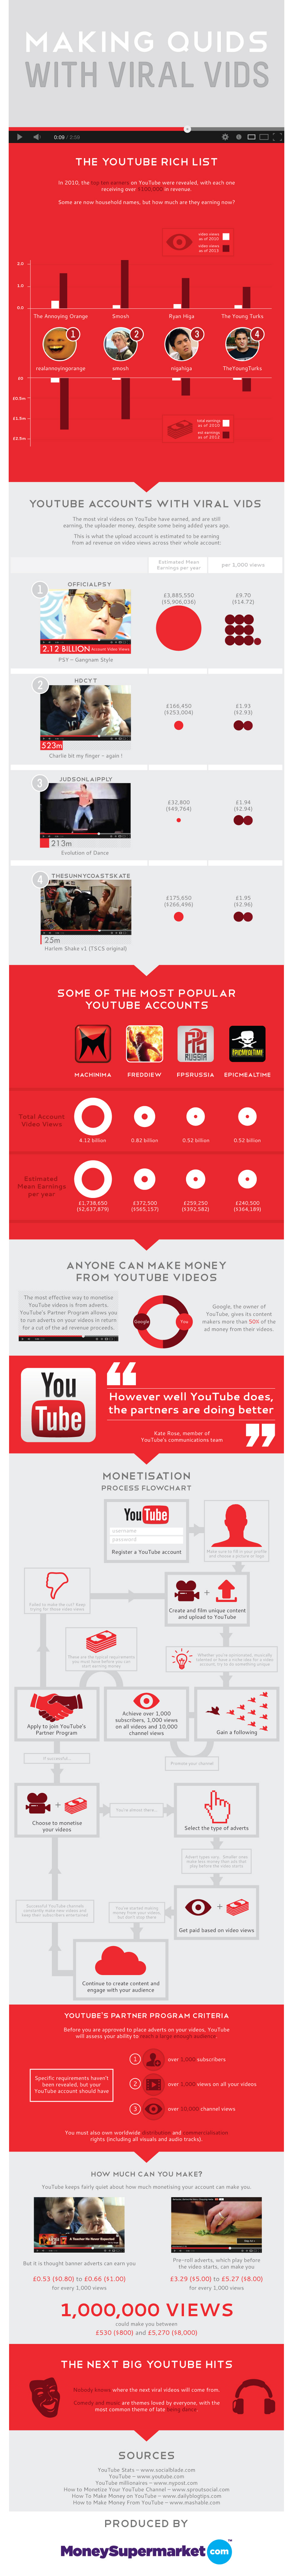 Top-Earning-YouTube-Videos